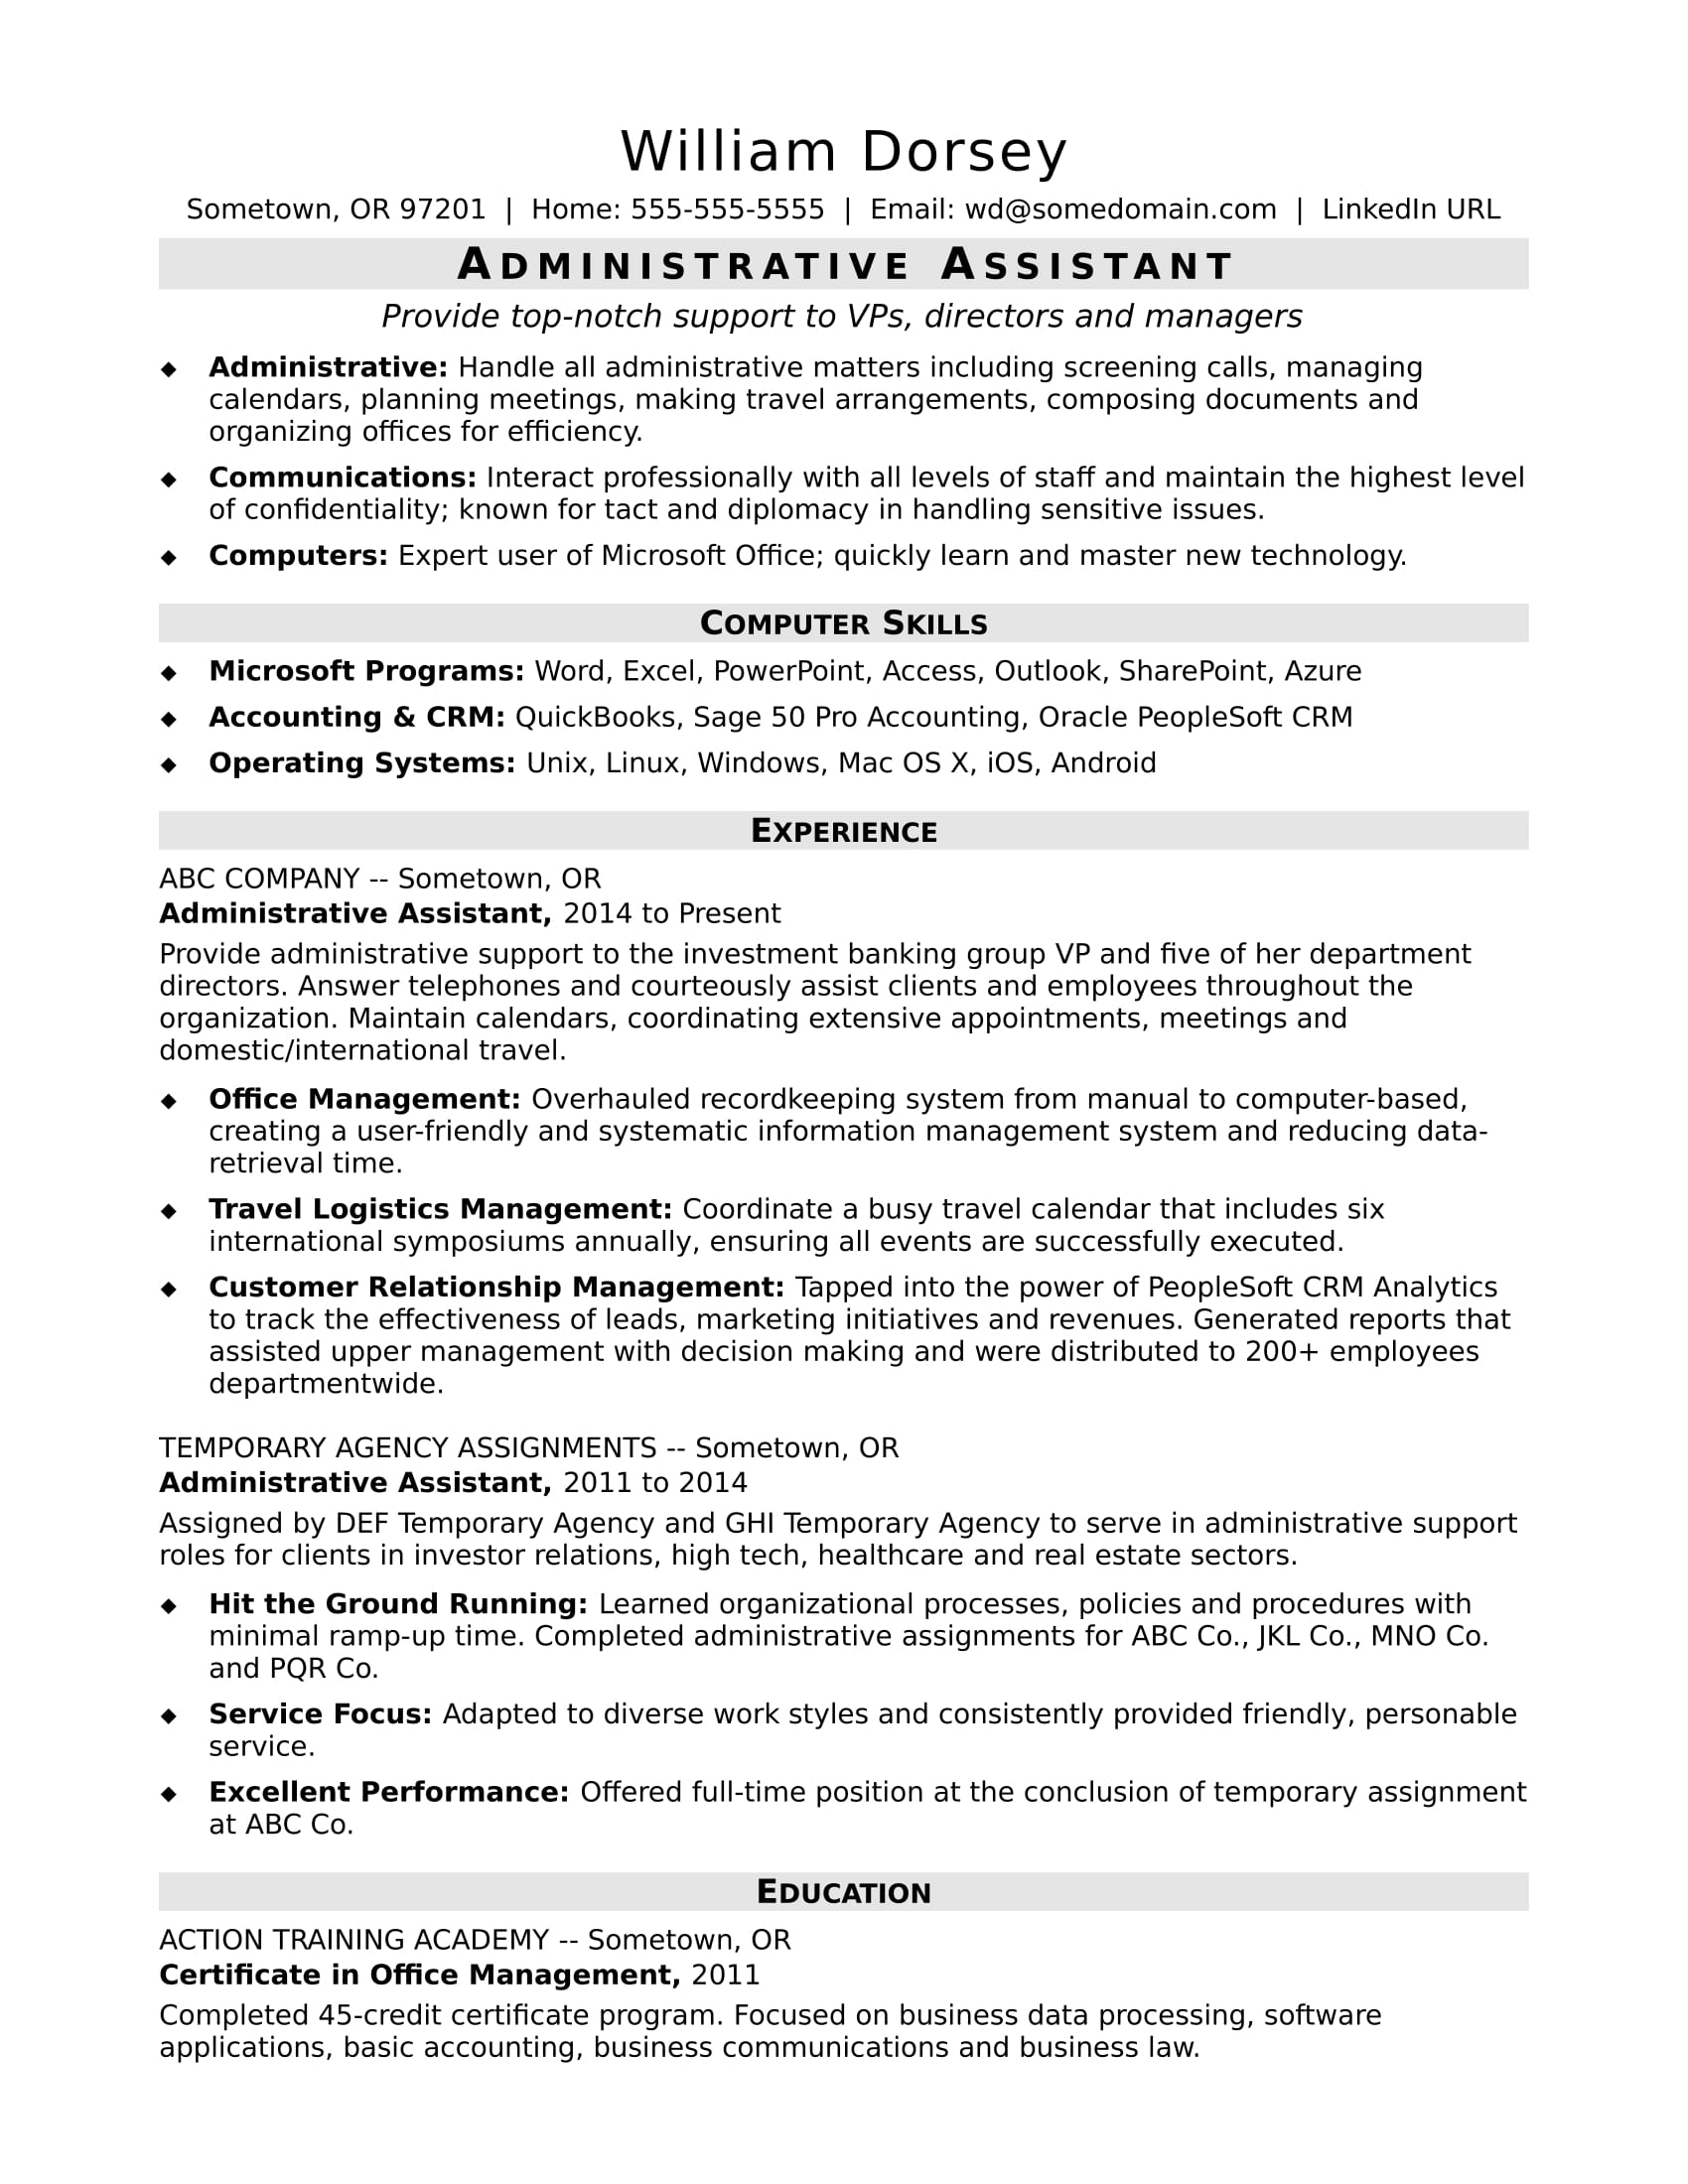 sample resume for a midlevel administrative assistant - Resume Example Administrative Assistant